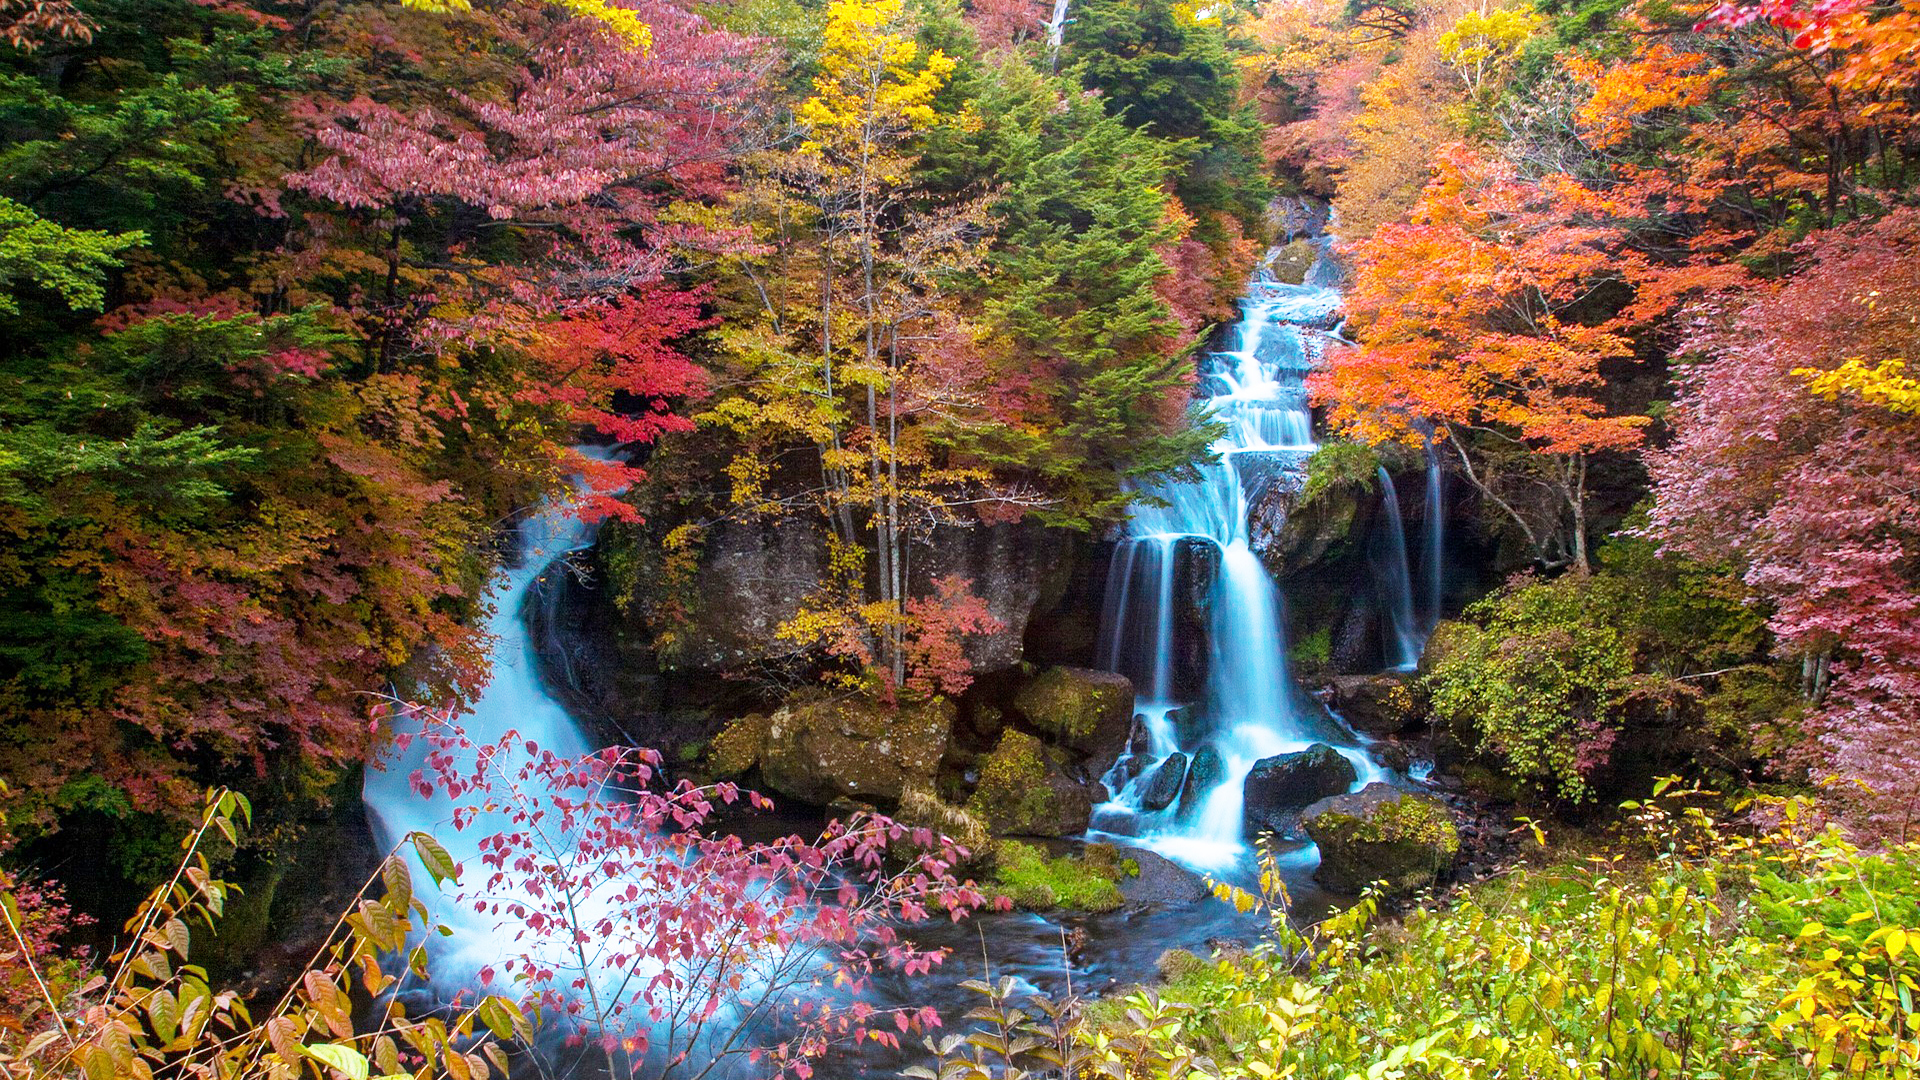 In photos: Northern Japan's autumn foliage has reached its peak colours